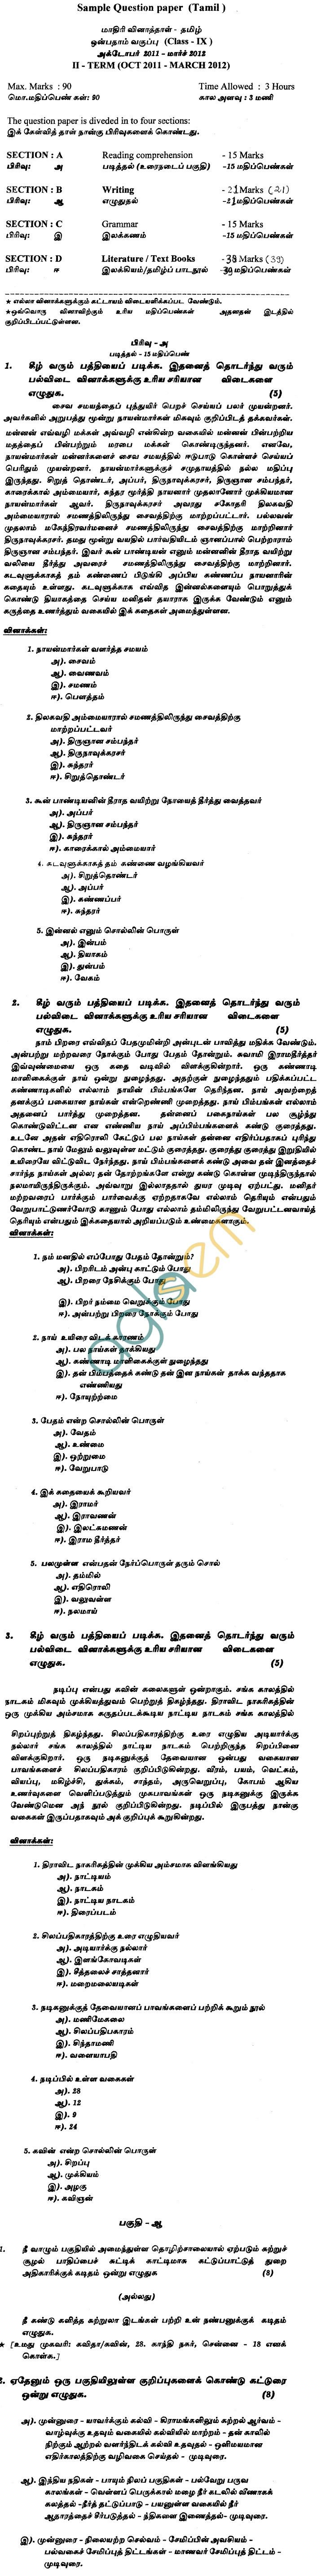 Cbse Class Ix  X Sample Papers  Second Term Tamil  Mm